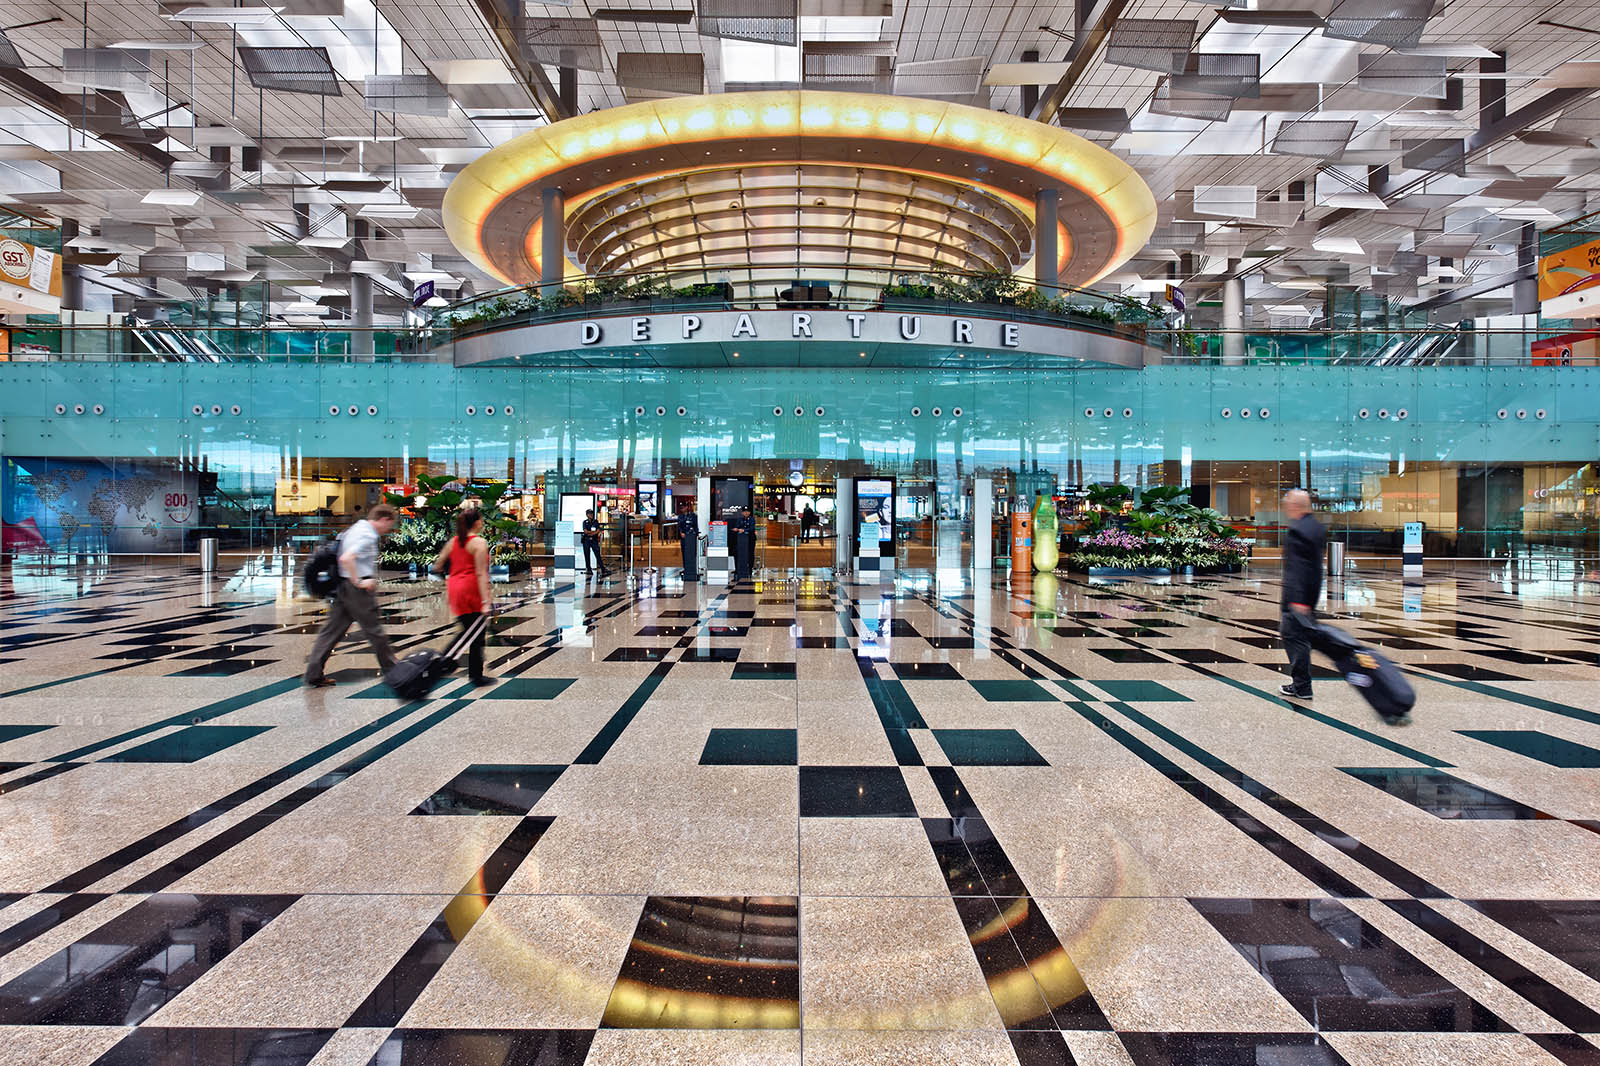 Architectural photography of Terminal 3 Singapore Changi International Airport. photo © Paul Dingman 2012. Paul Dingman is an architectural photographer based in Asia in China. He is an specialist in the photography of large scale projects including convention centers, mixed-use, and airports.